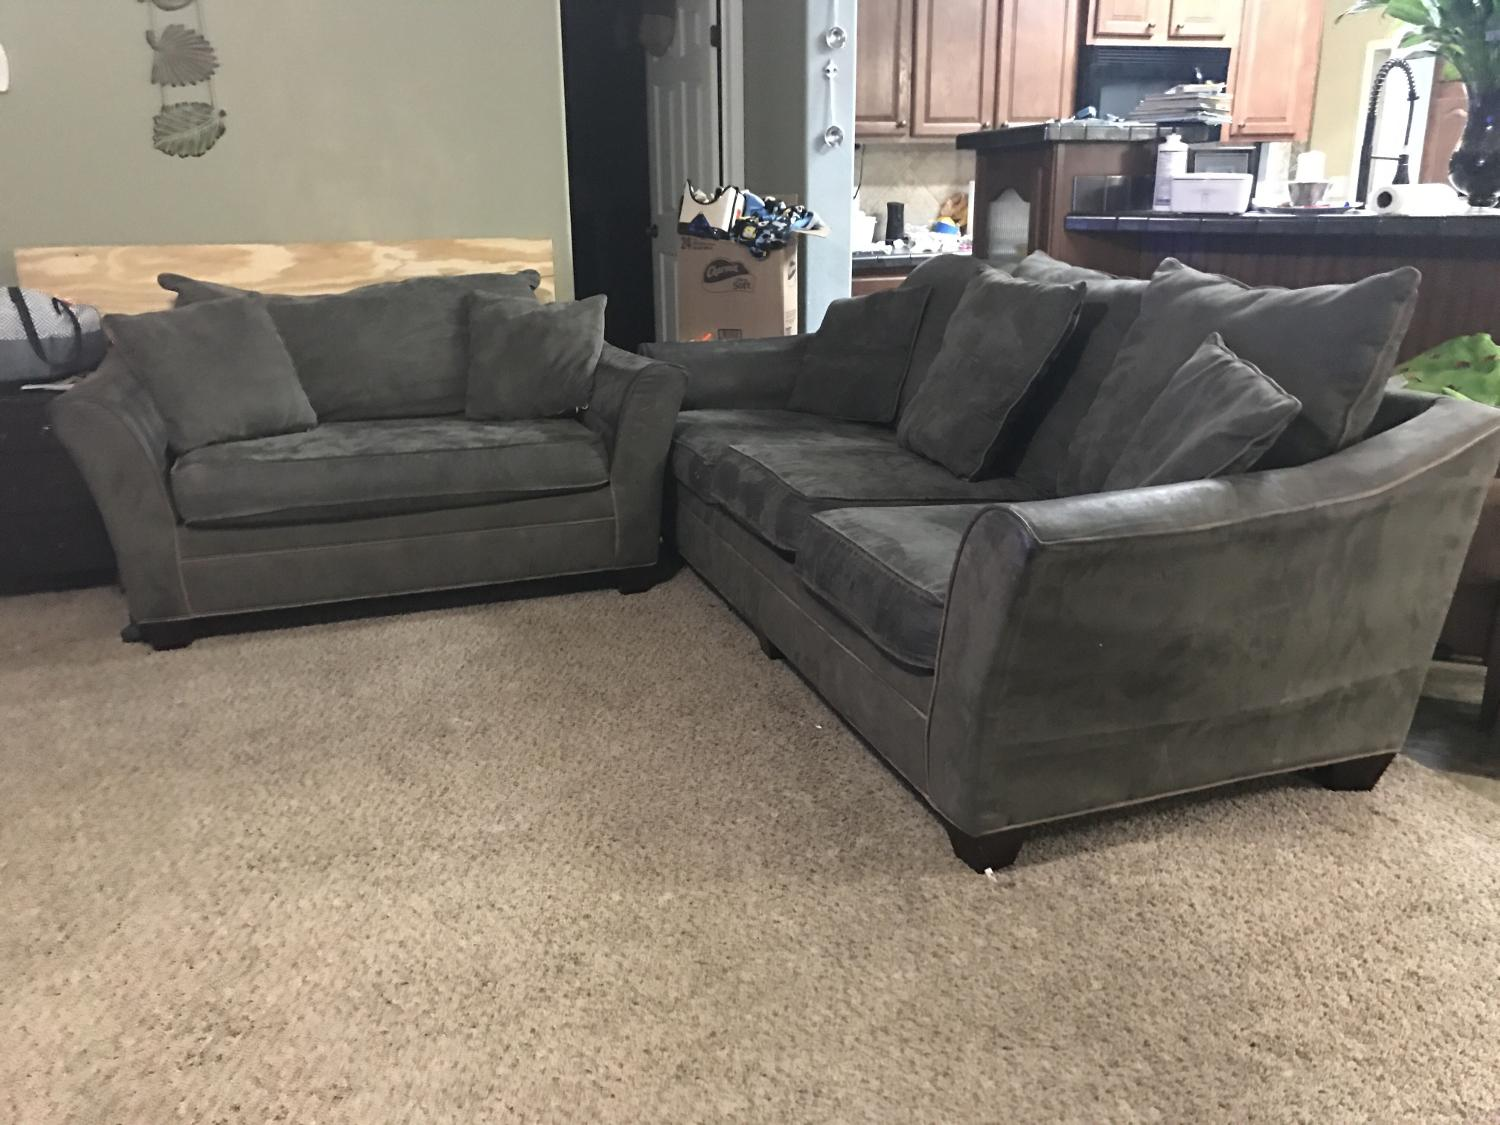 Find More Sofa Loveseat For Sale At Up To 90 Off Baton Rouge La